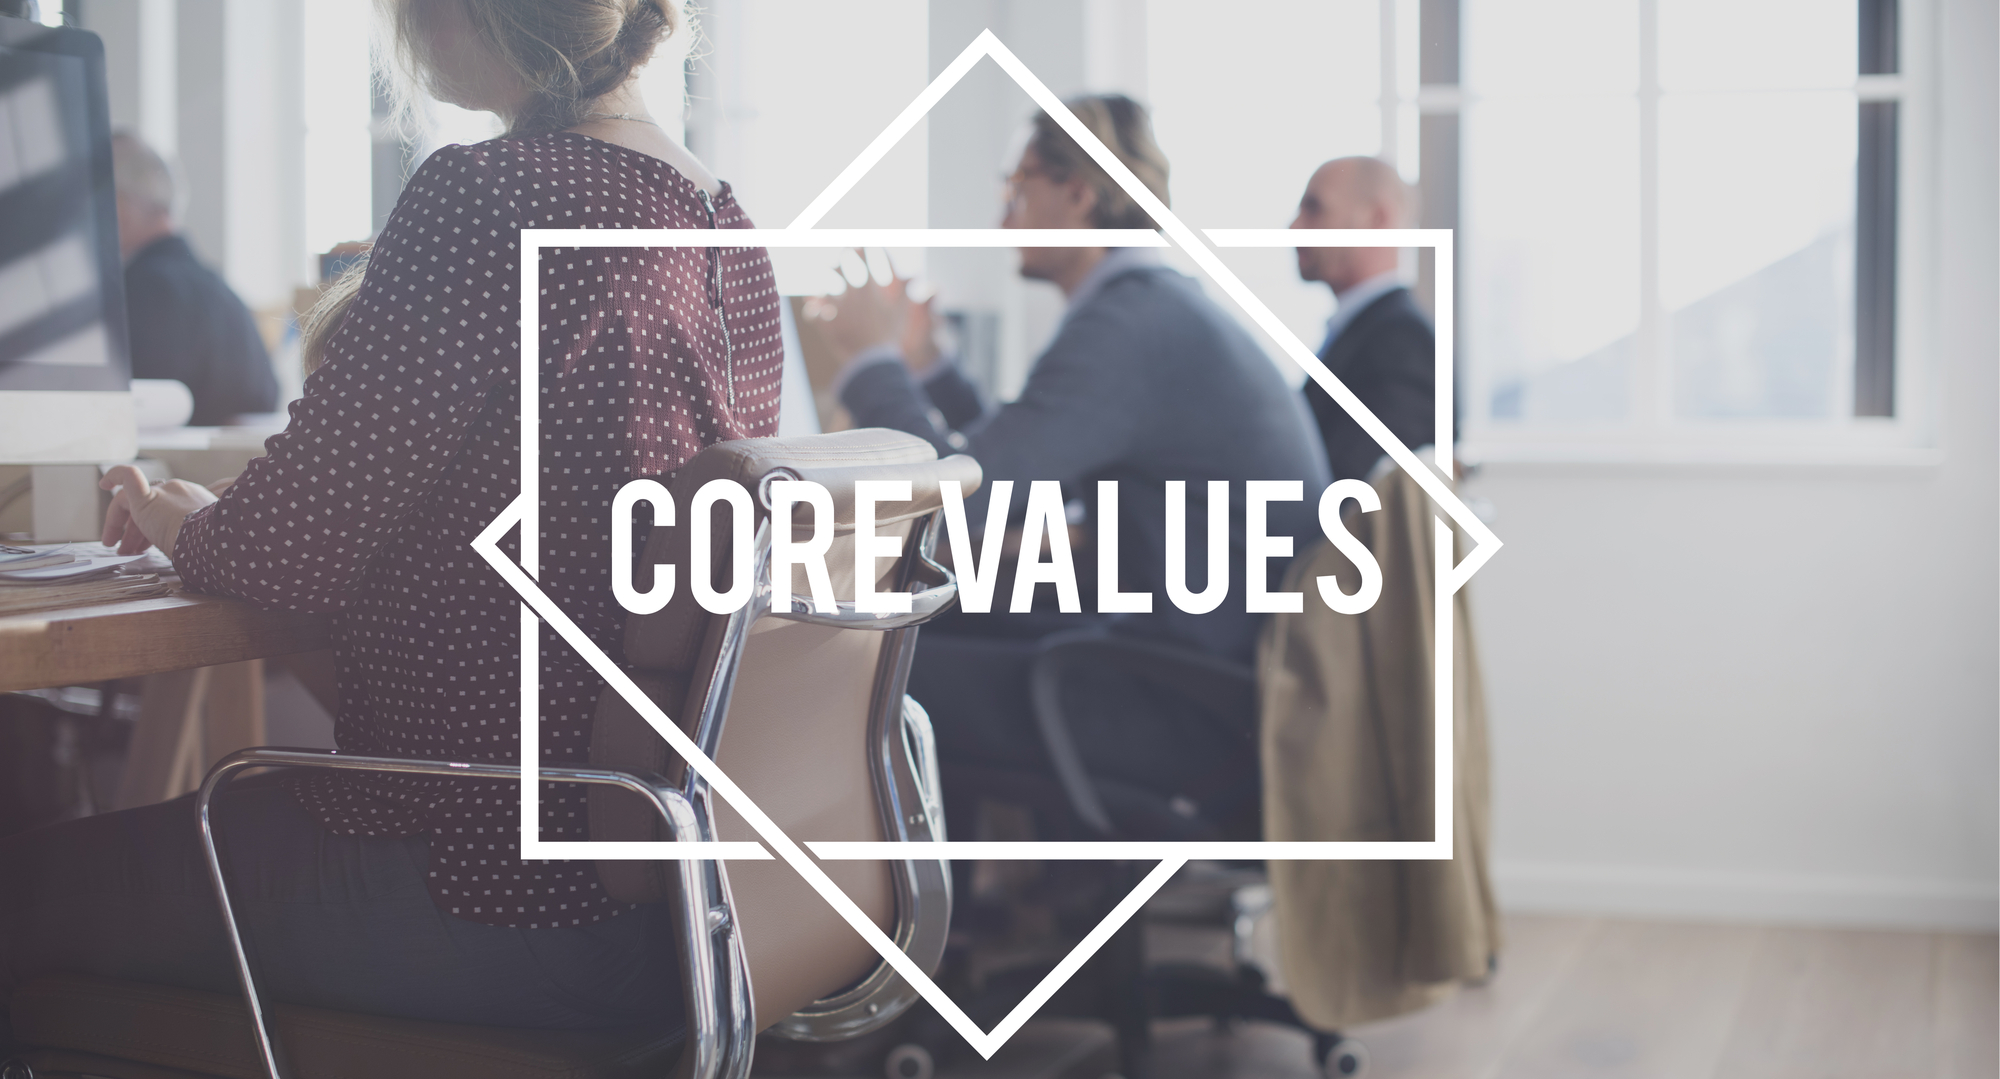 Business team discussing core values